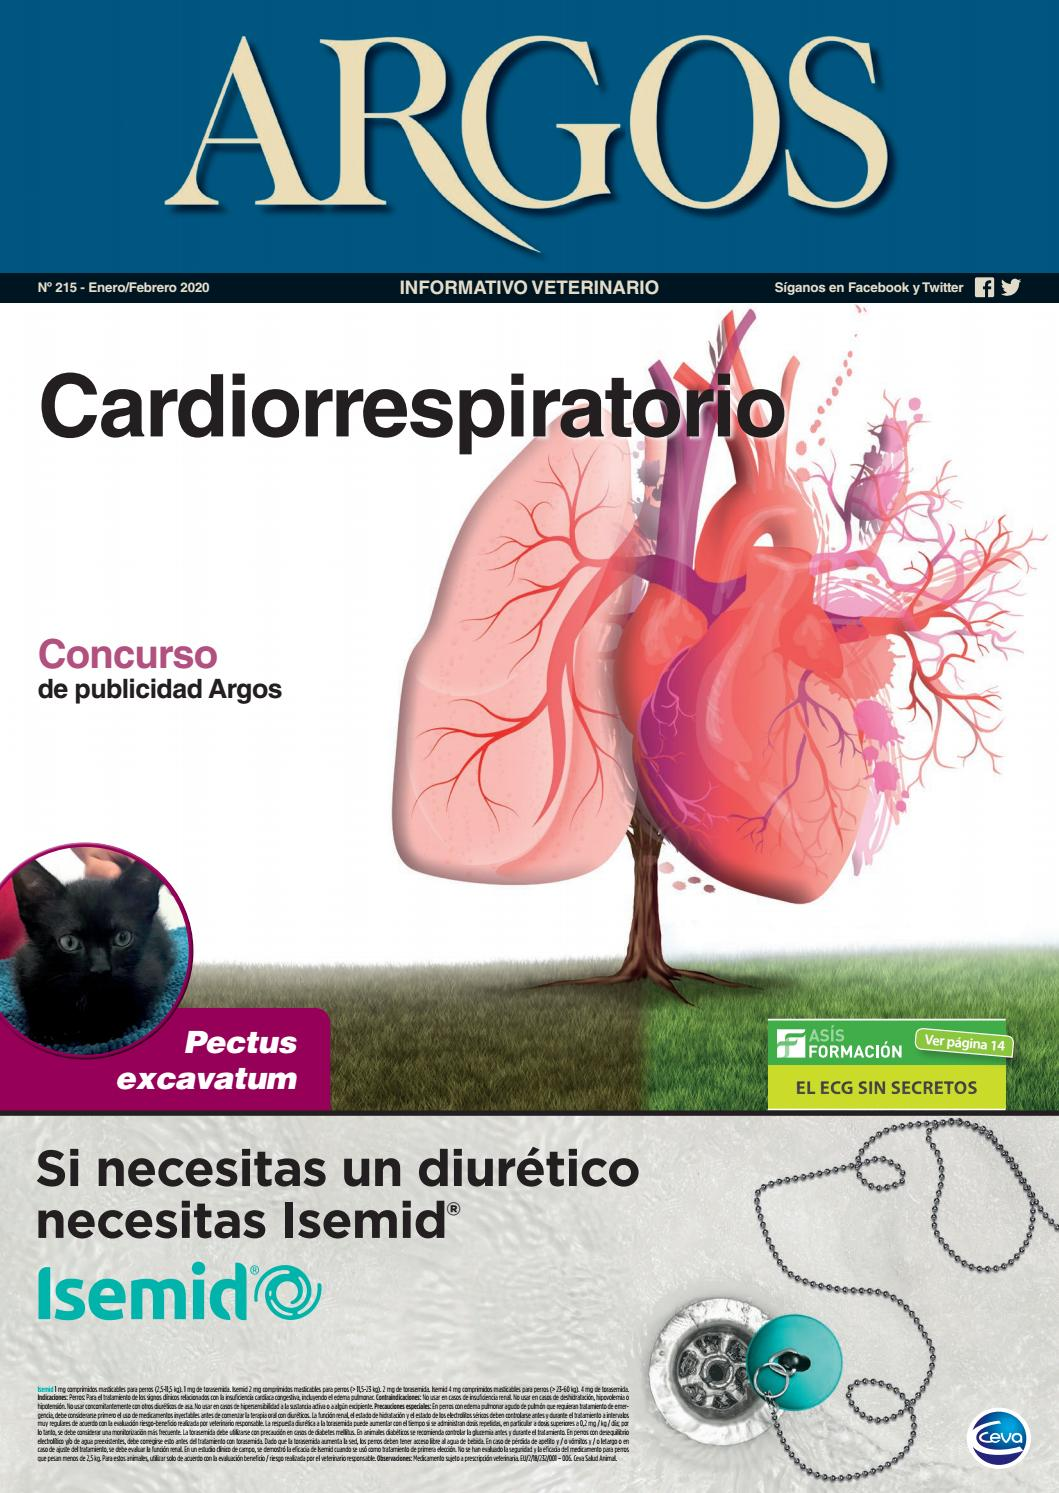 aafp folleto para pacientes con diabetes previa